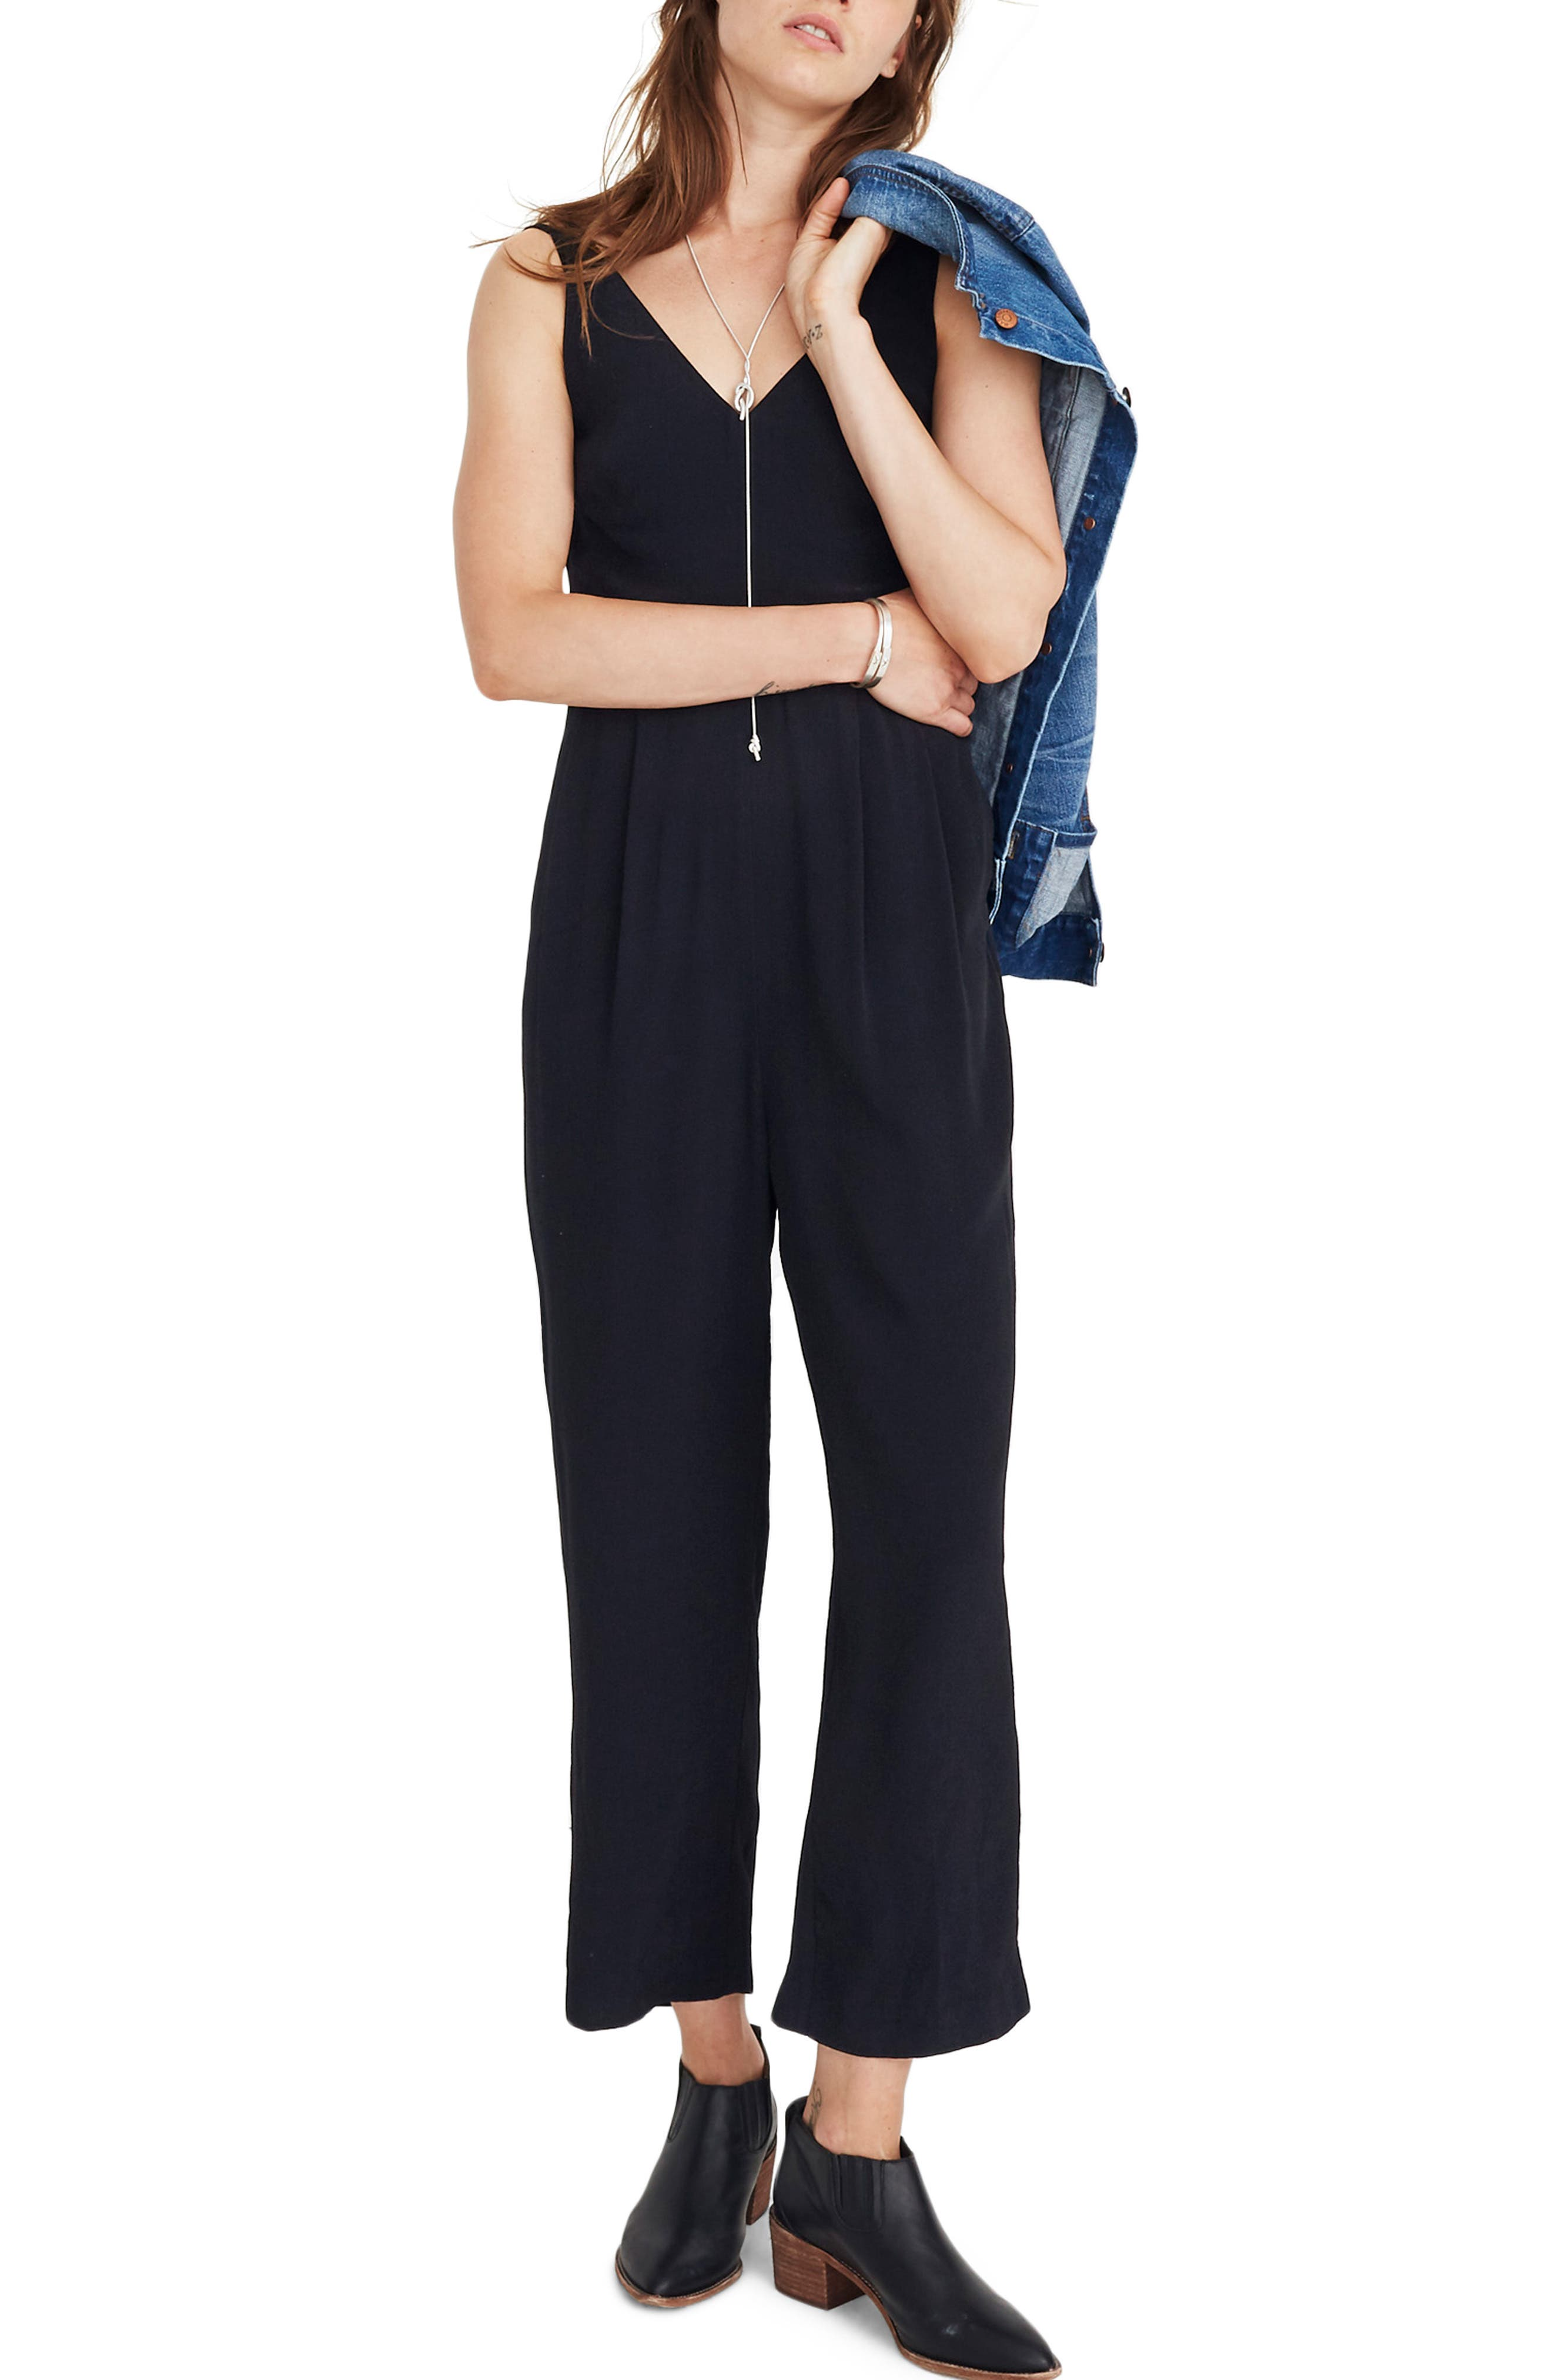 MADEWELL,                             V-Neck Jumpsuit,                             Main thumbnail 1, color,                             001